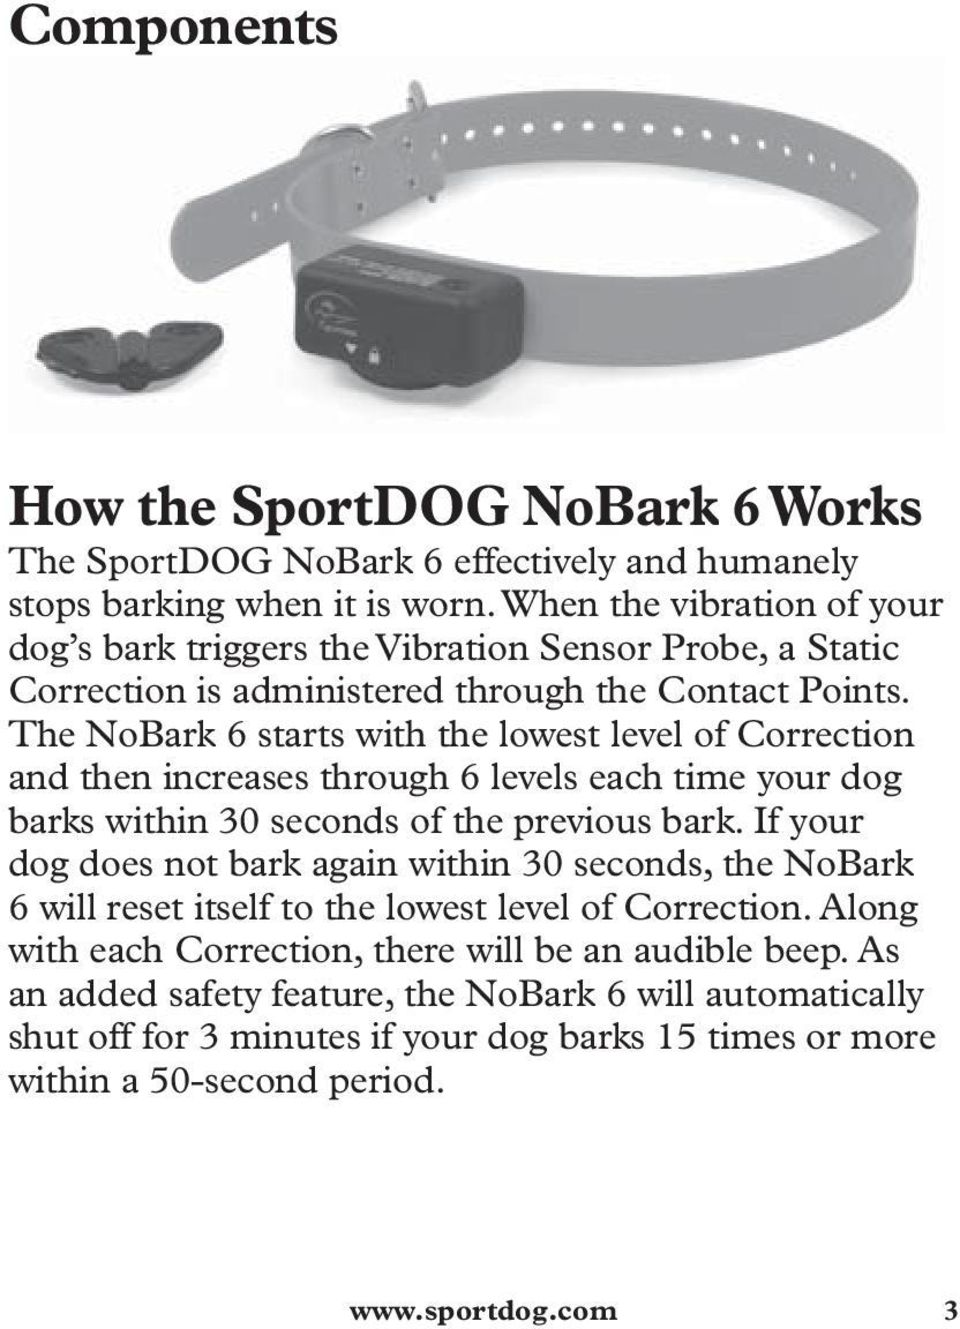 The NoBark 6 starts with the lowest level of Correction and then increases through 6 levels each time your dog barks within 30 seconds of the previous bark.